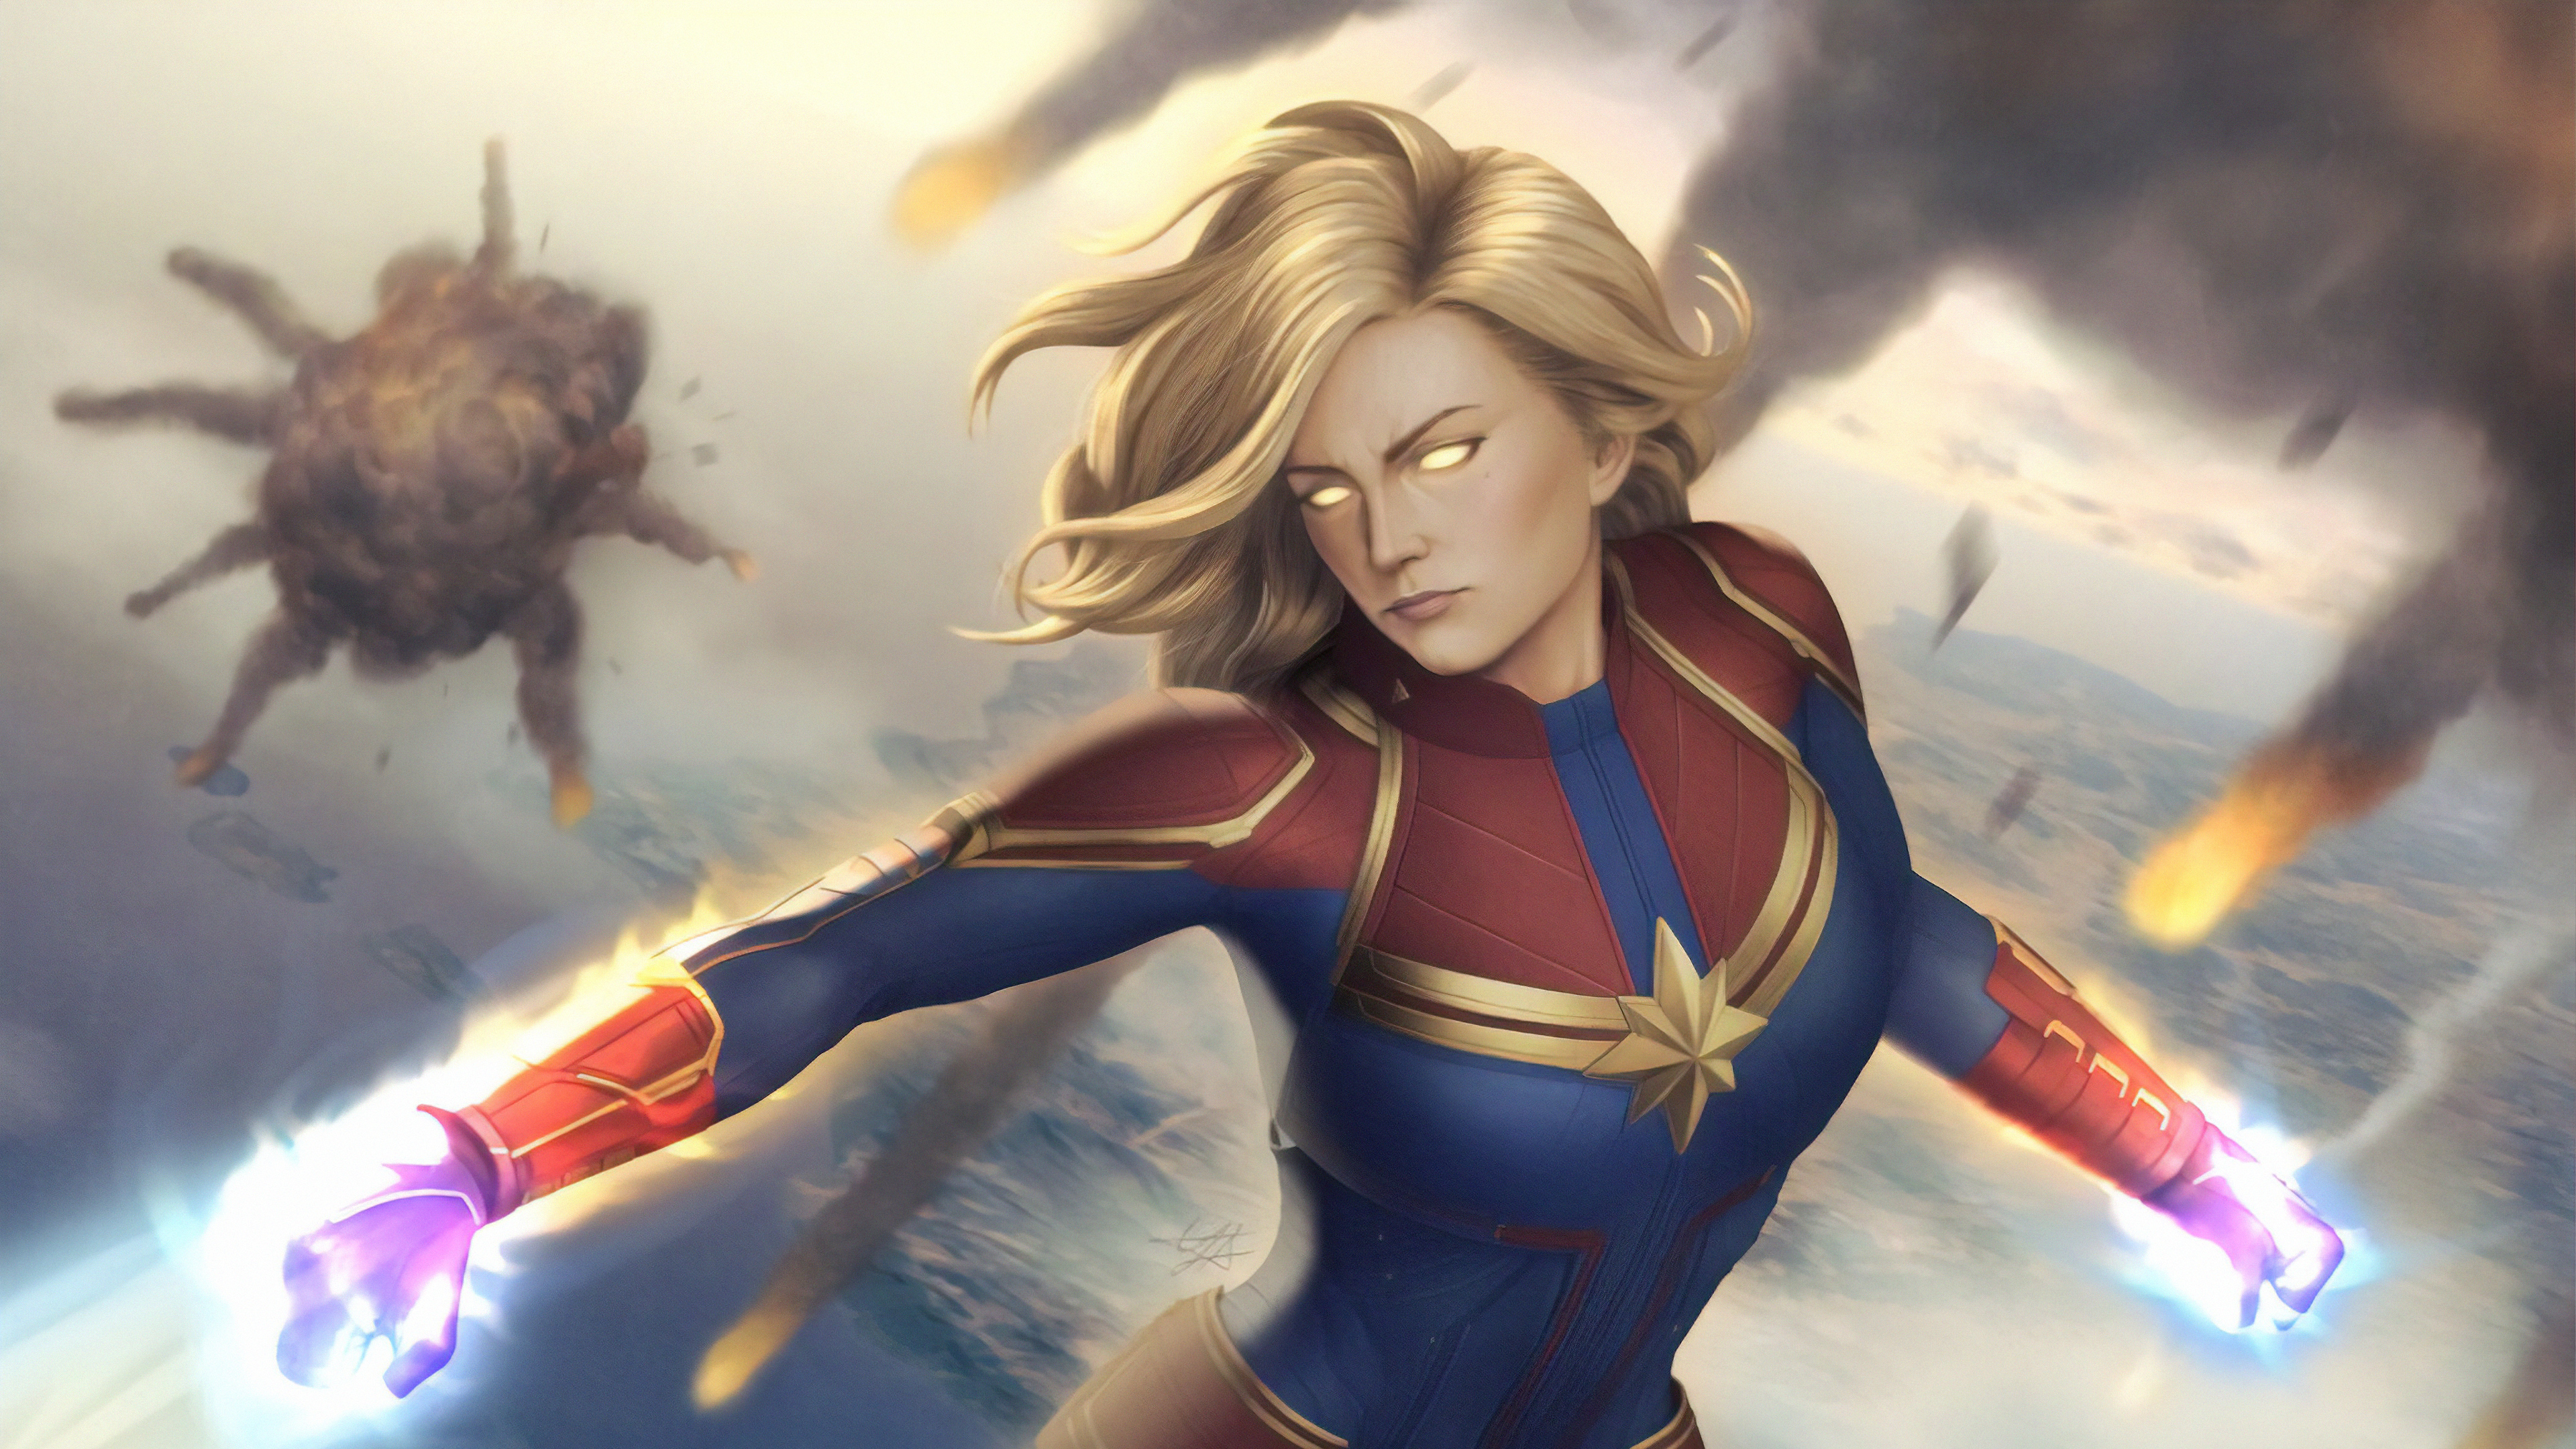 captain marvel new 1570394362 - Captain Marvel New - superheroes wallpapers, hd-wallpapers, captain marvel wallpapers, artwork wallpapers, art wallpapers, 4k-wallpapers